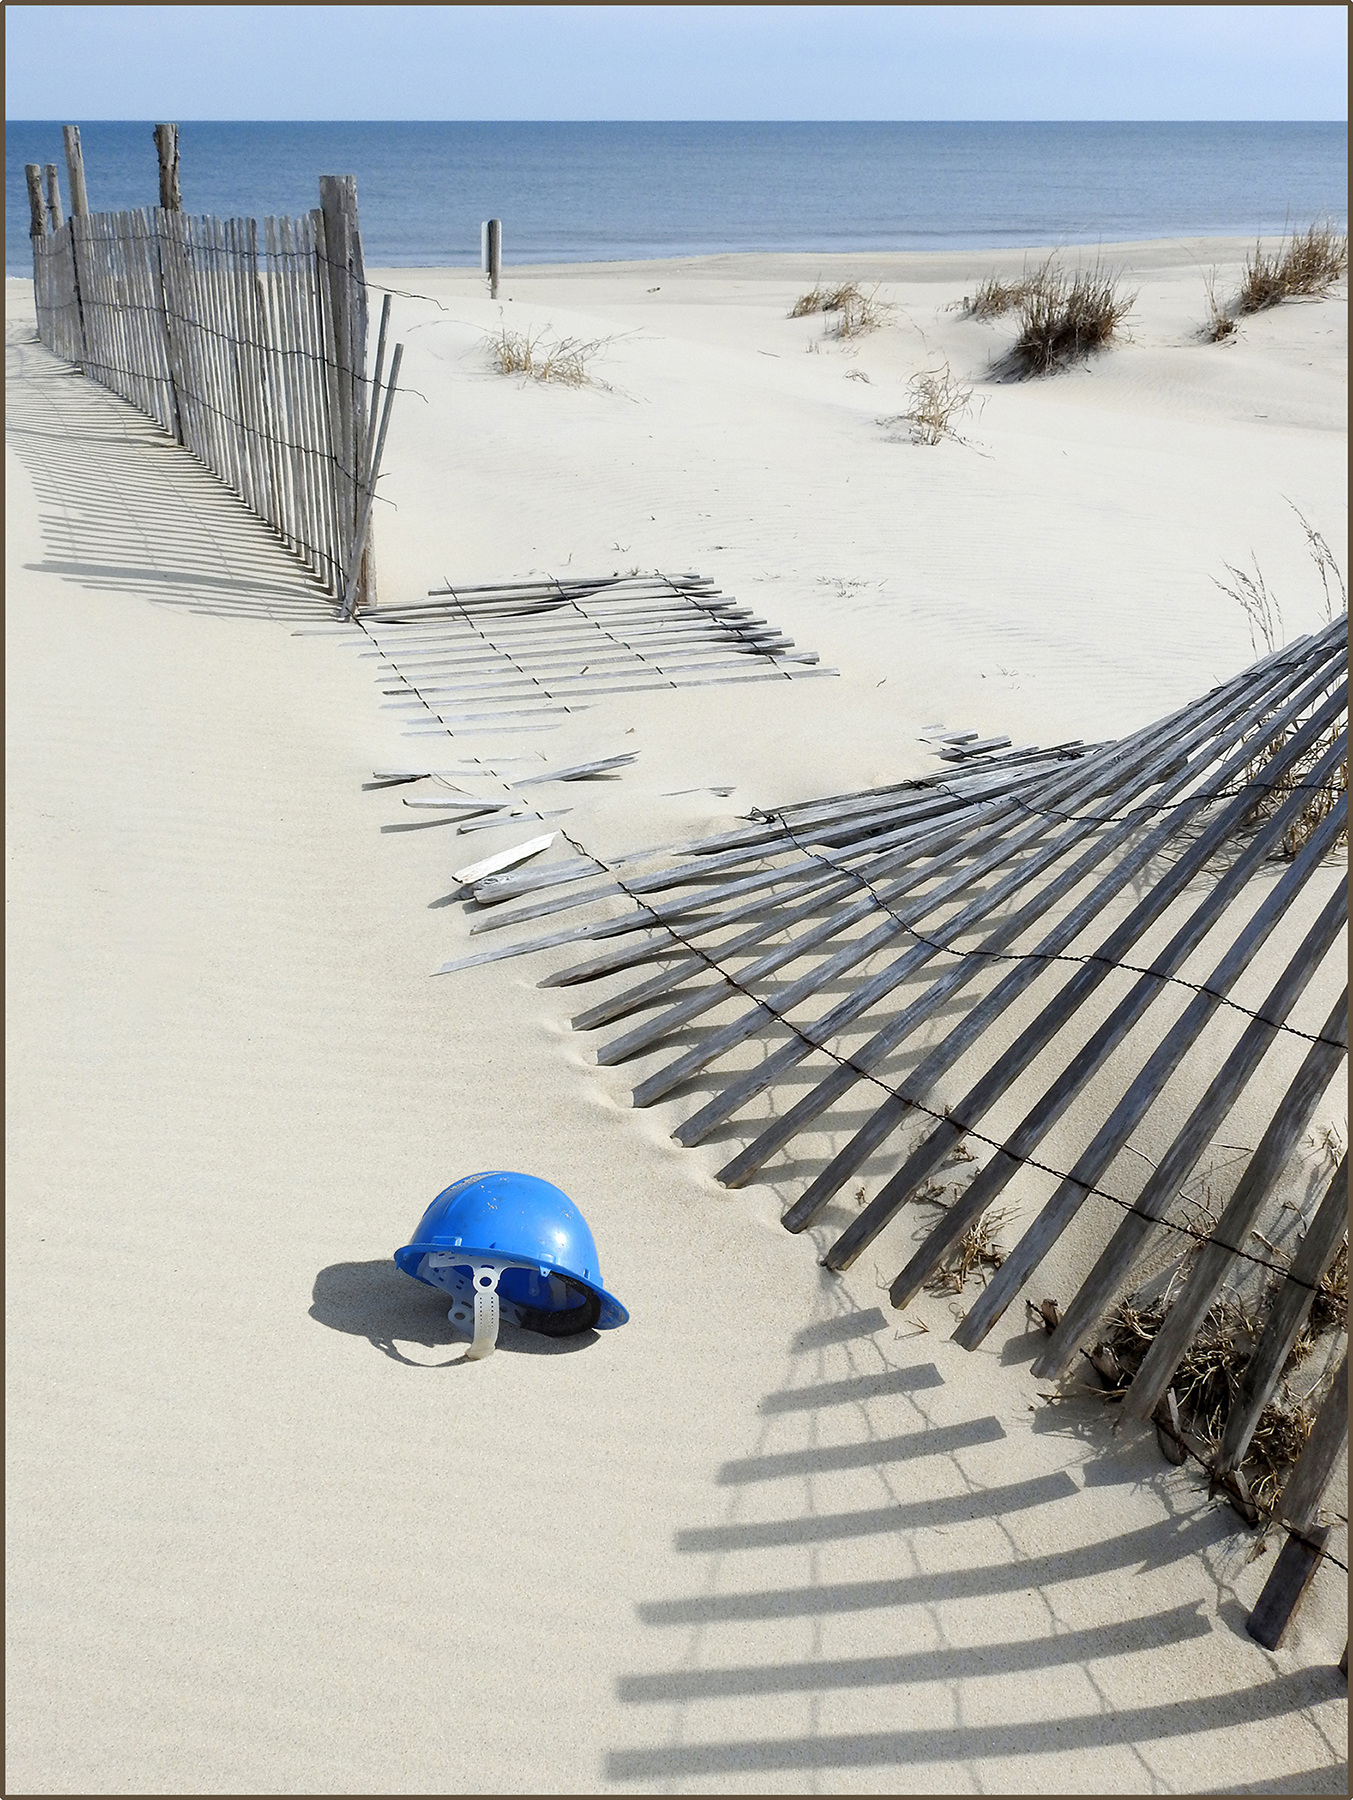 Lone blue helmet next to wind-blown beach fence on sunny Dewey Beach with Atlantic Ocean in background. Shadows cast by sun.